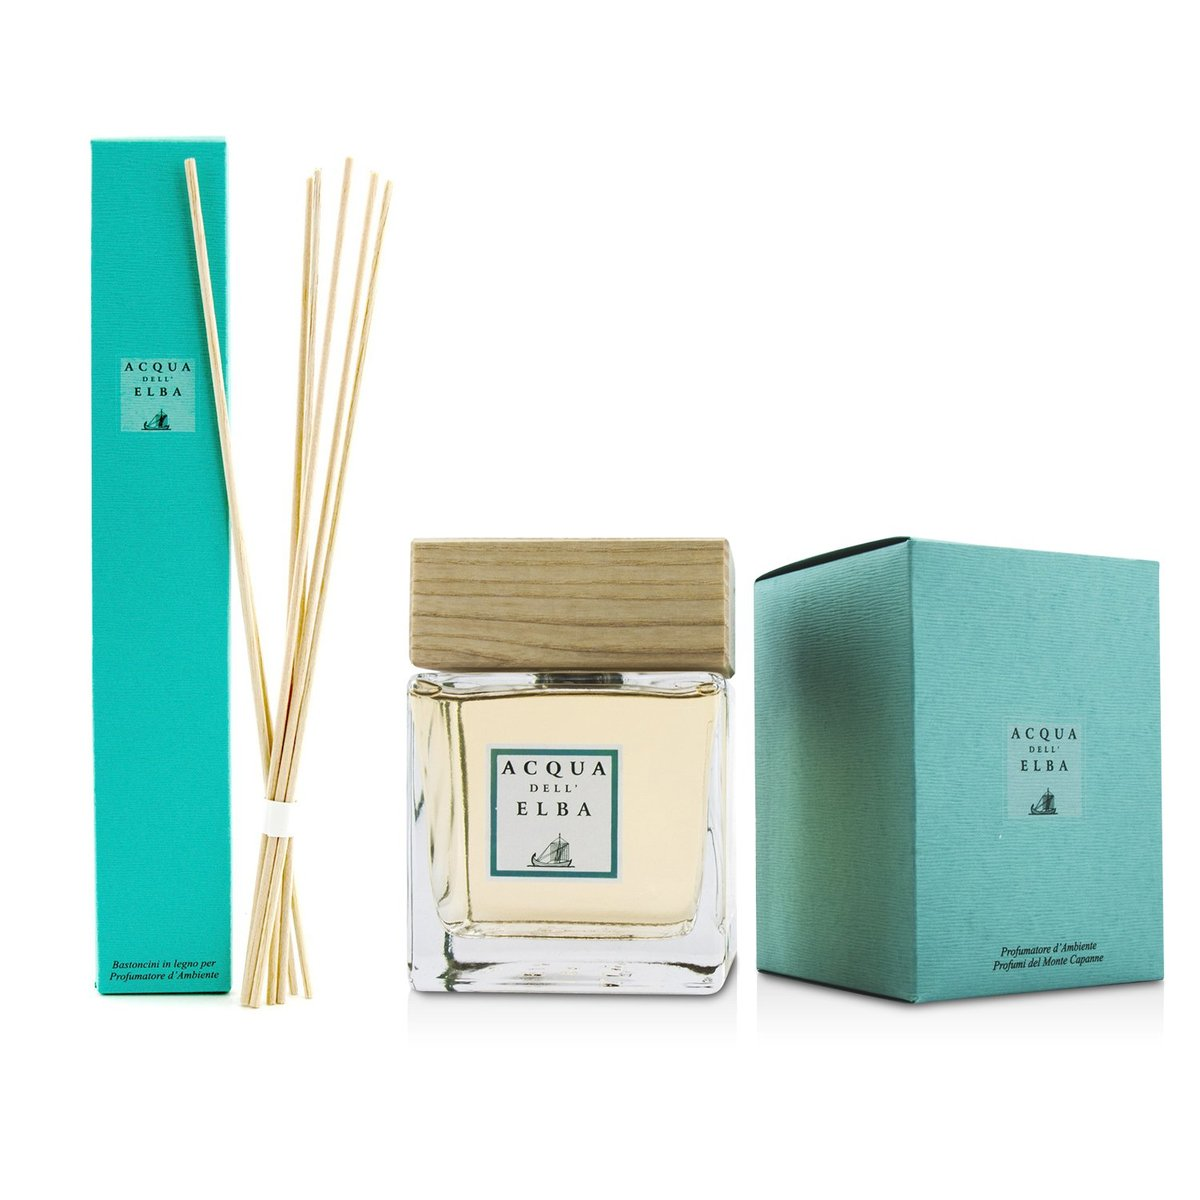 Home Fragrance Diffuser - Profumi Del Monte Capanne  -[Parallel Import Product]